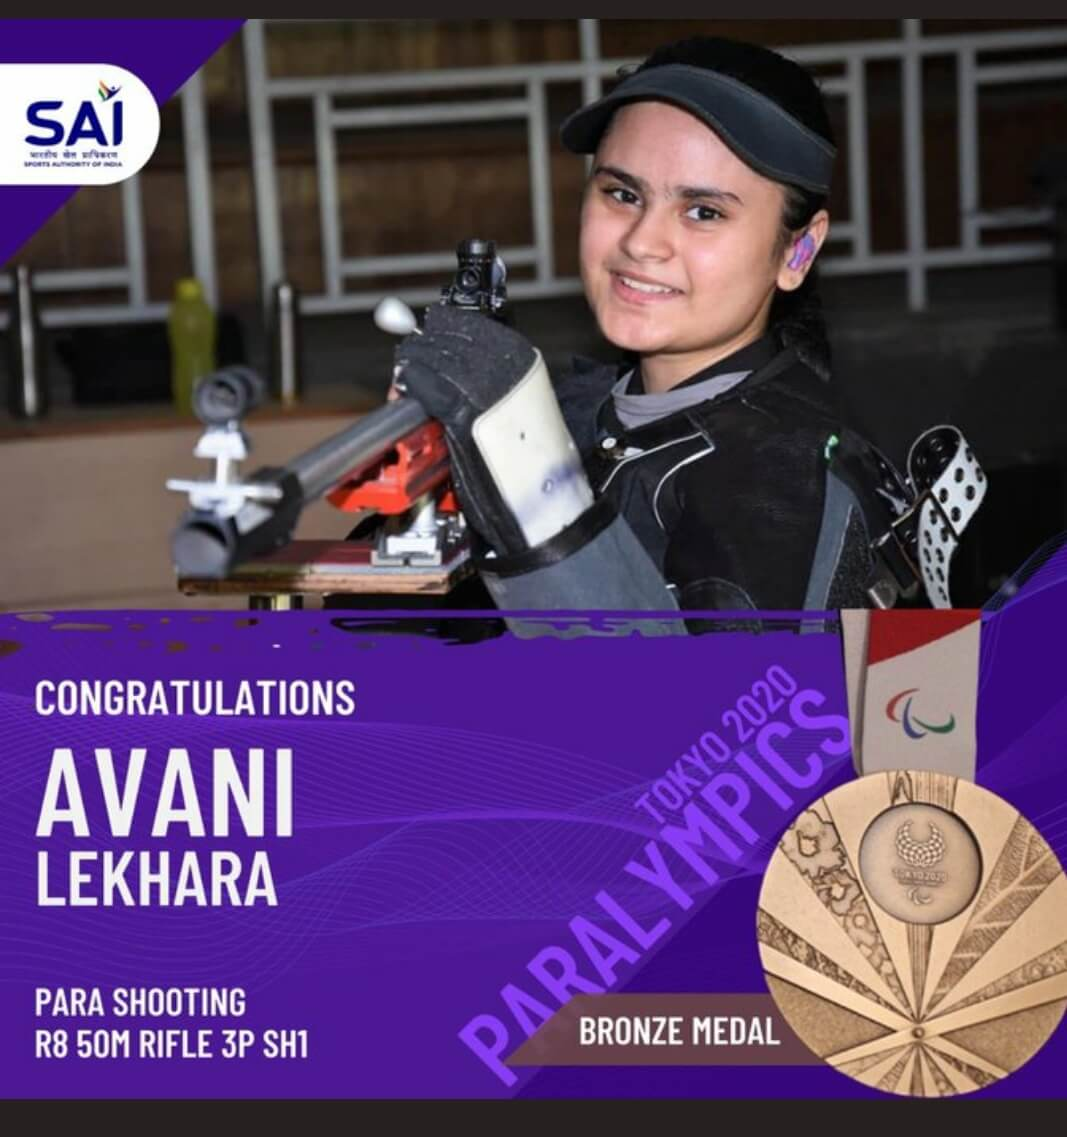 Avani won bronze medal in 50m air rifle after gold